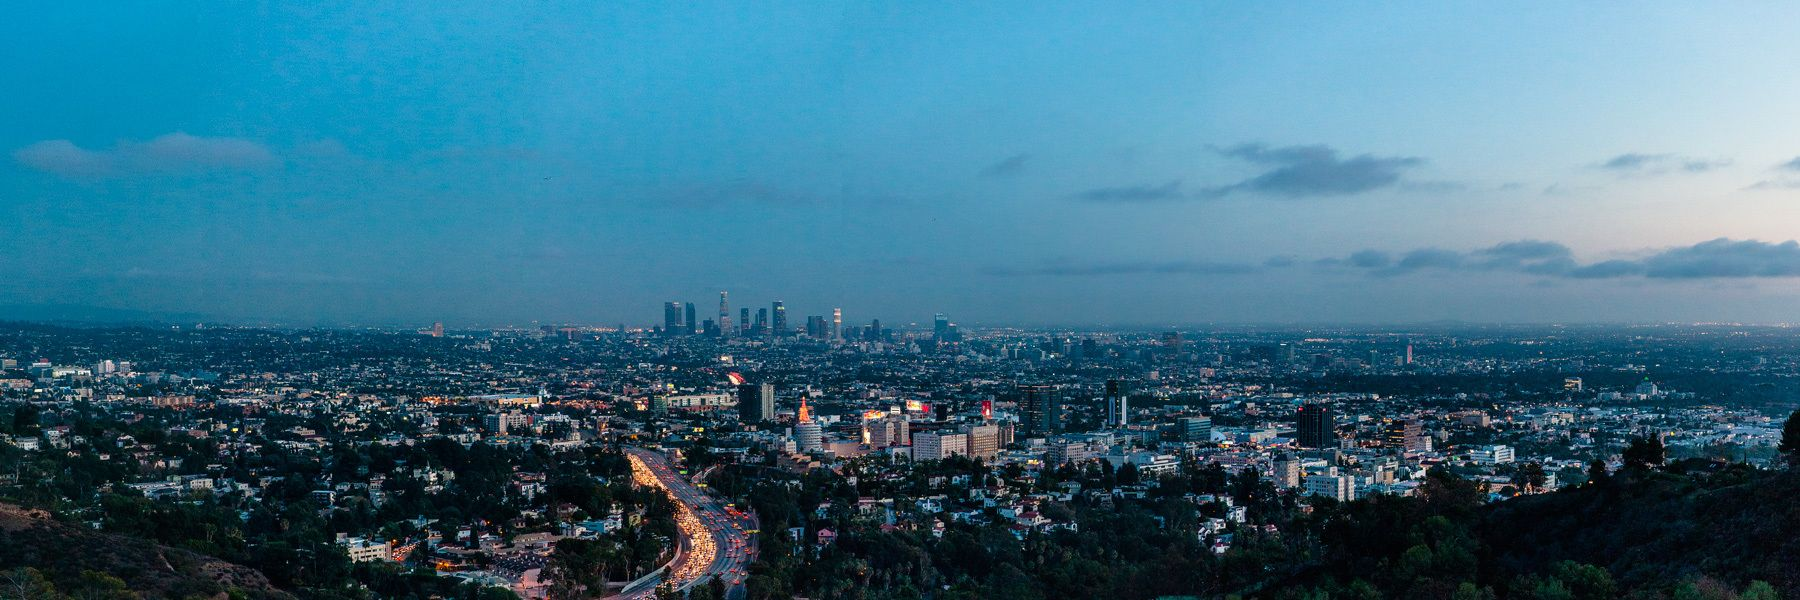 1hollywood_panorama1